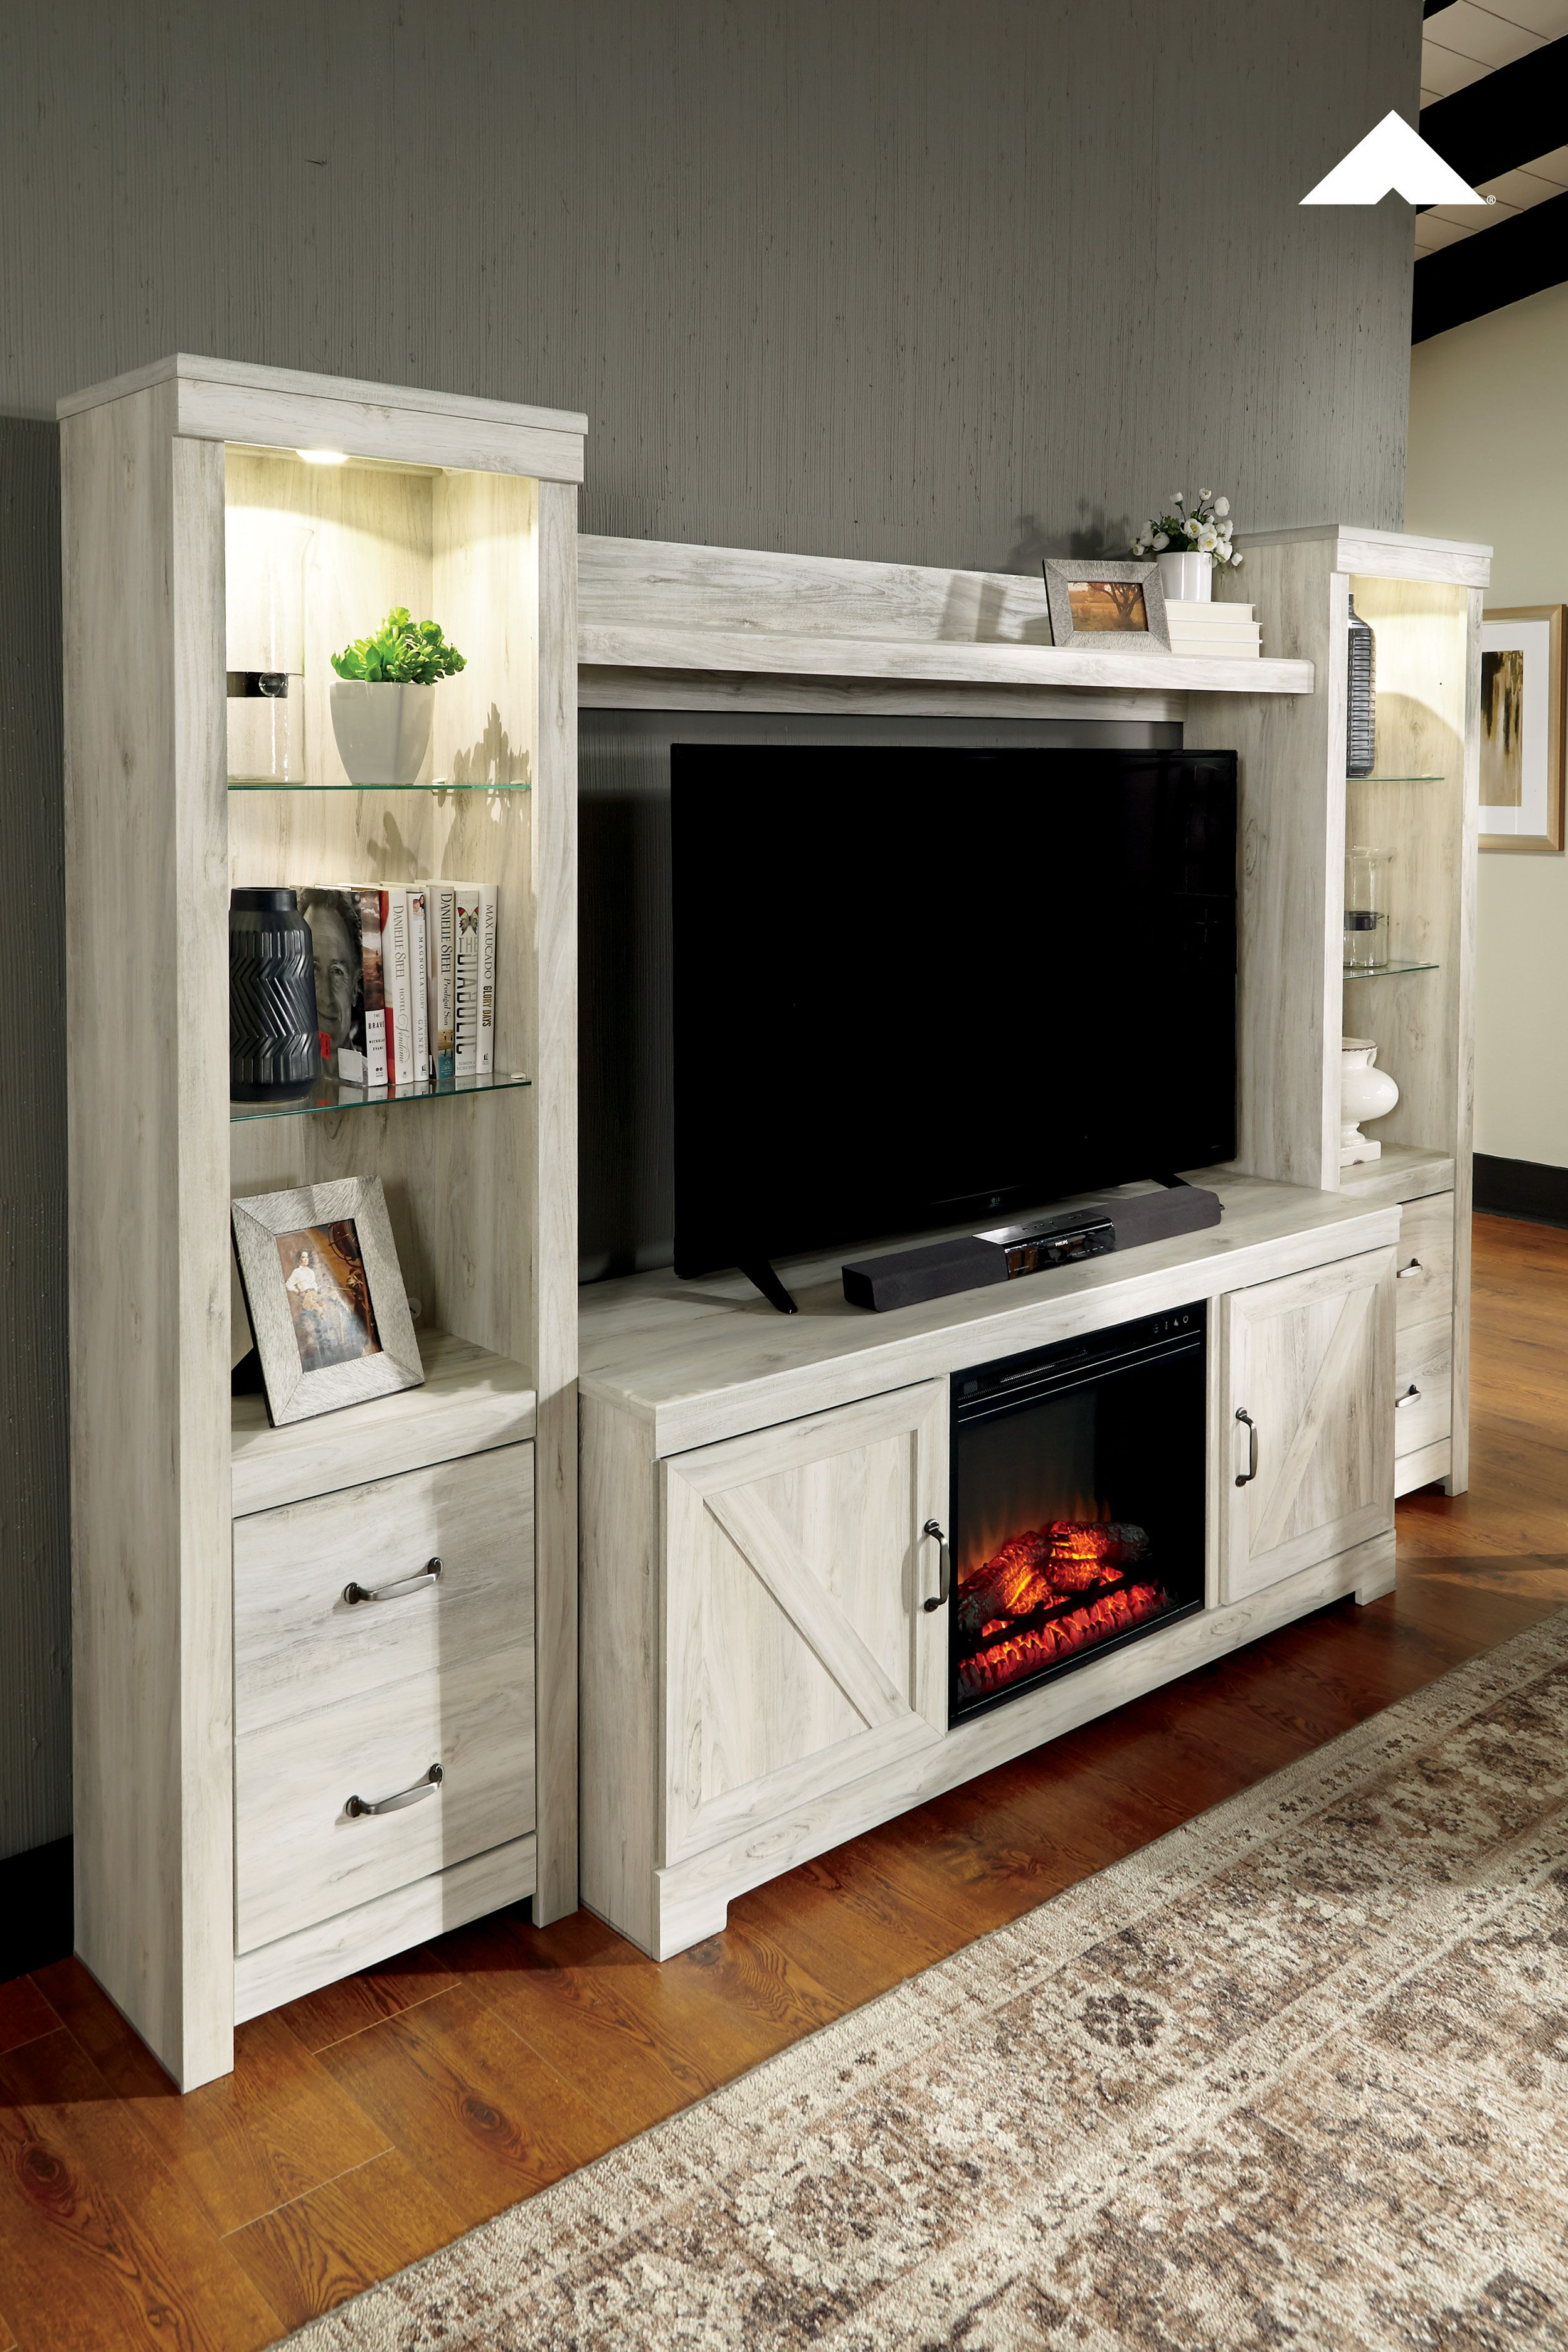 Meubles Ashley Floride Warm Up This Winter With Our Bellaby Large Tv Stand W Fireplace